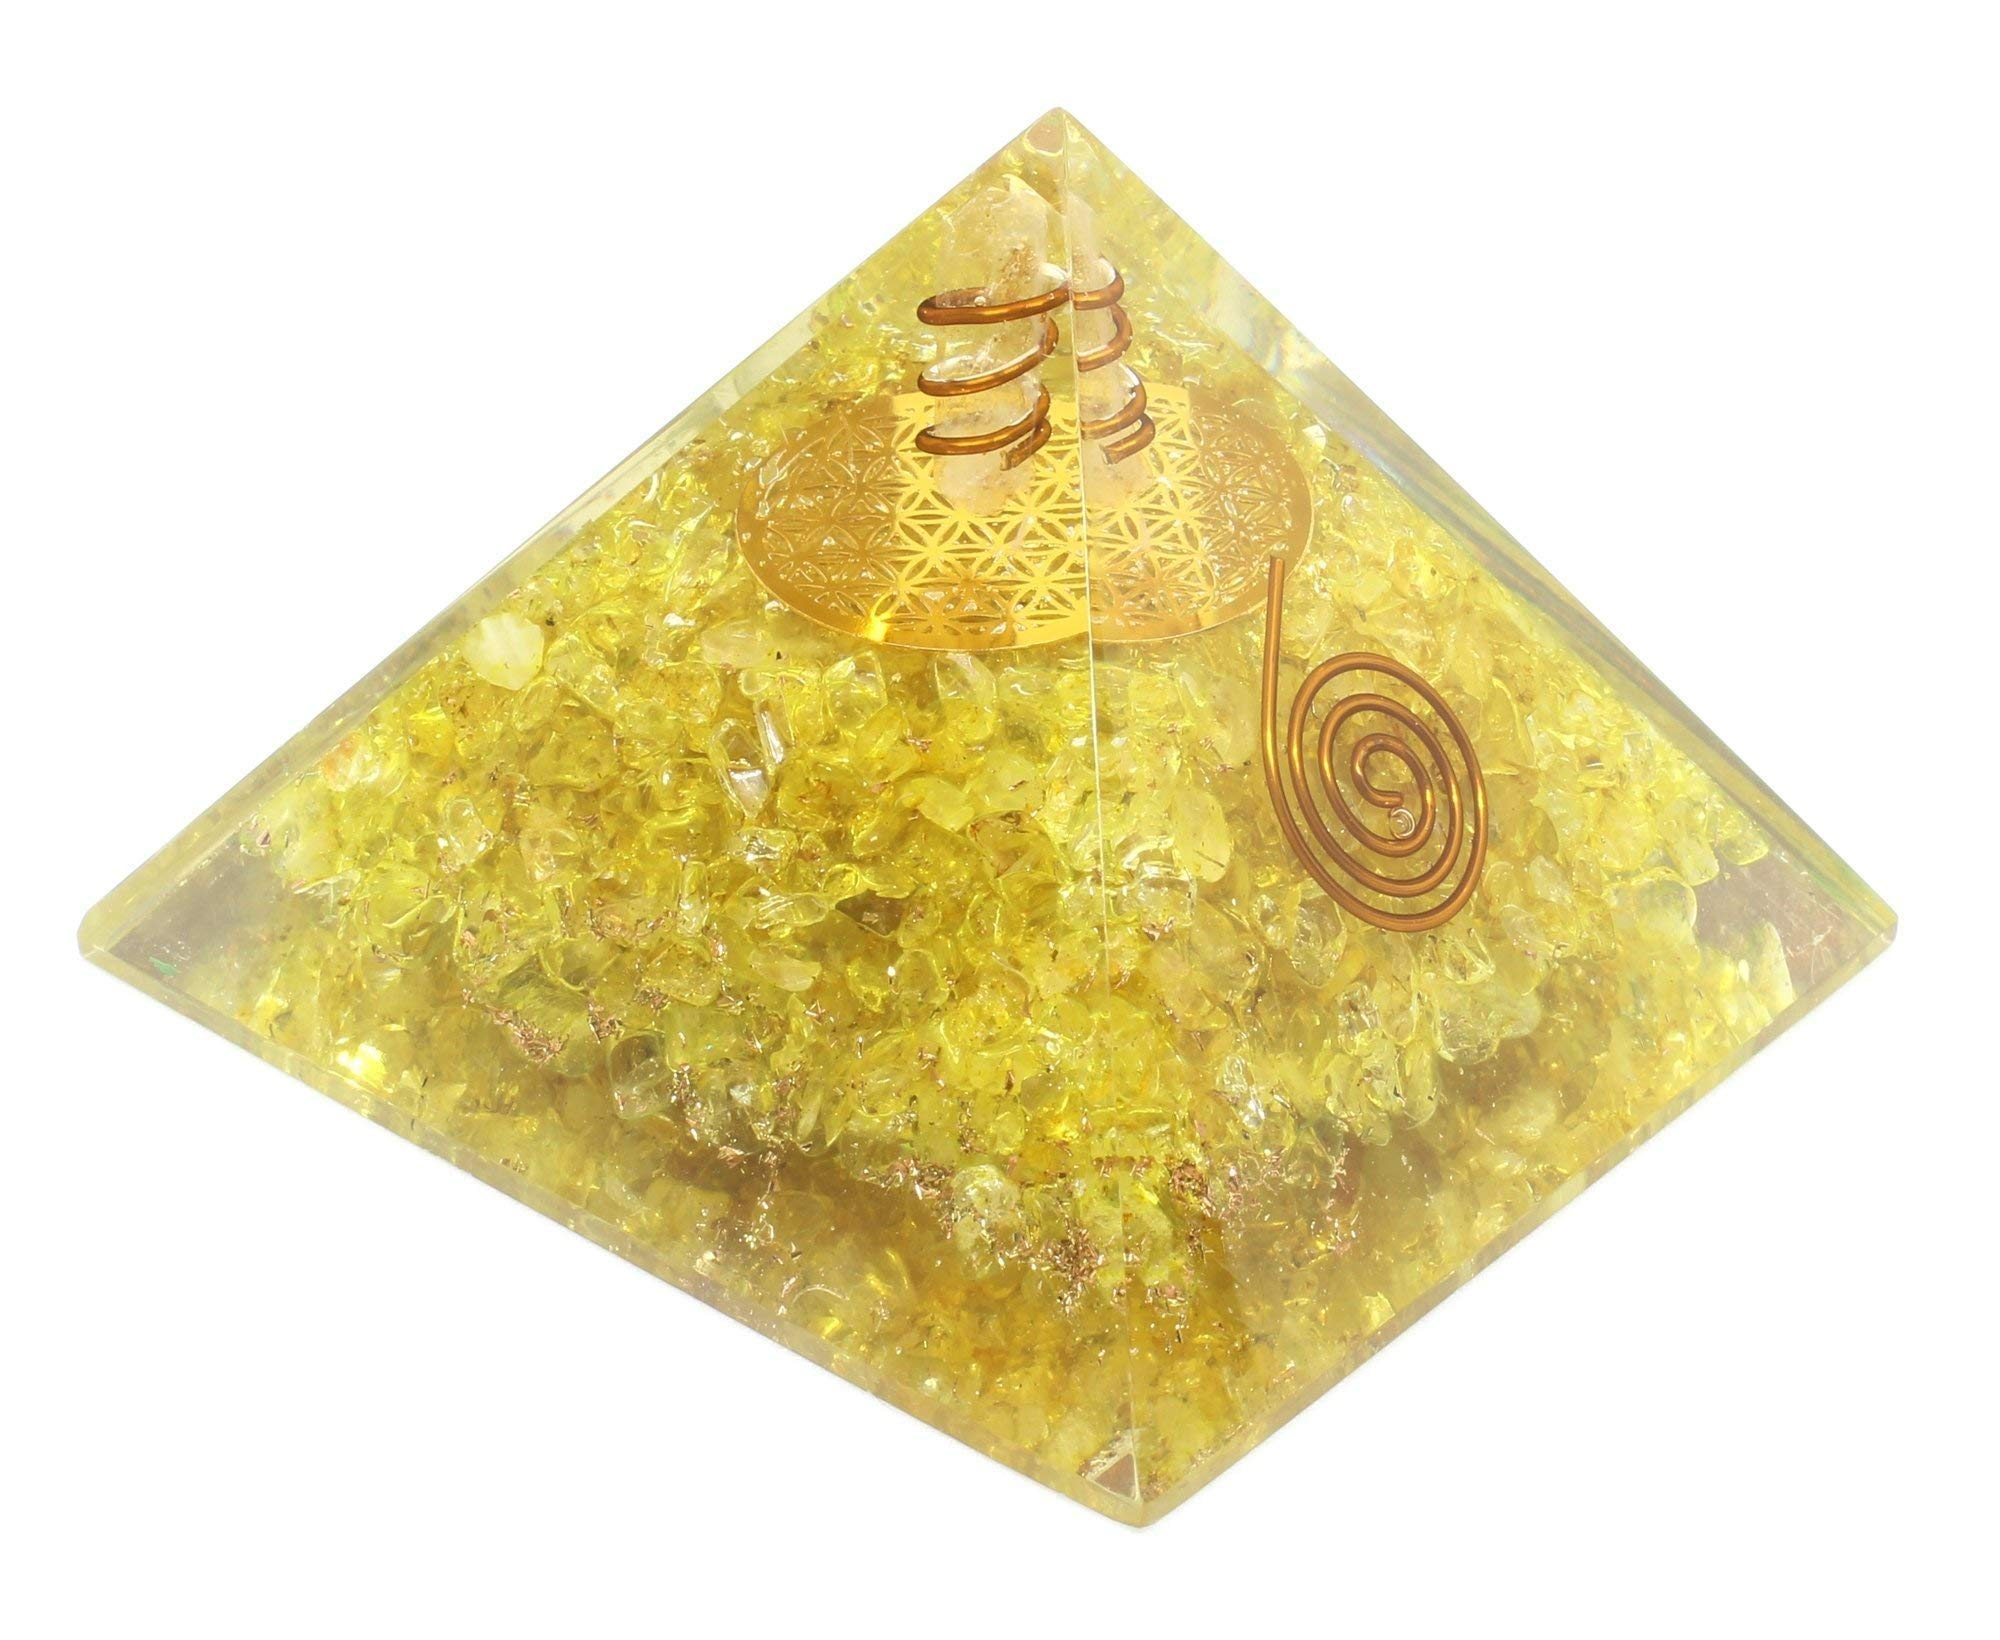 Orgone Pyramid-Citrine Copper Healing Crystals-Orgone Energy Pyramid for EMF Protection Chakra Balancing-Heart Love Booster-Flower of Life by Crystal Agate